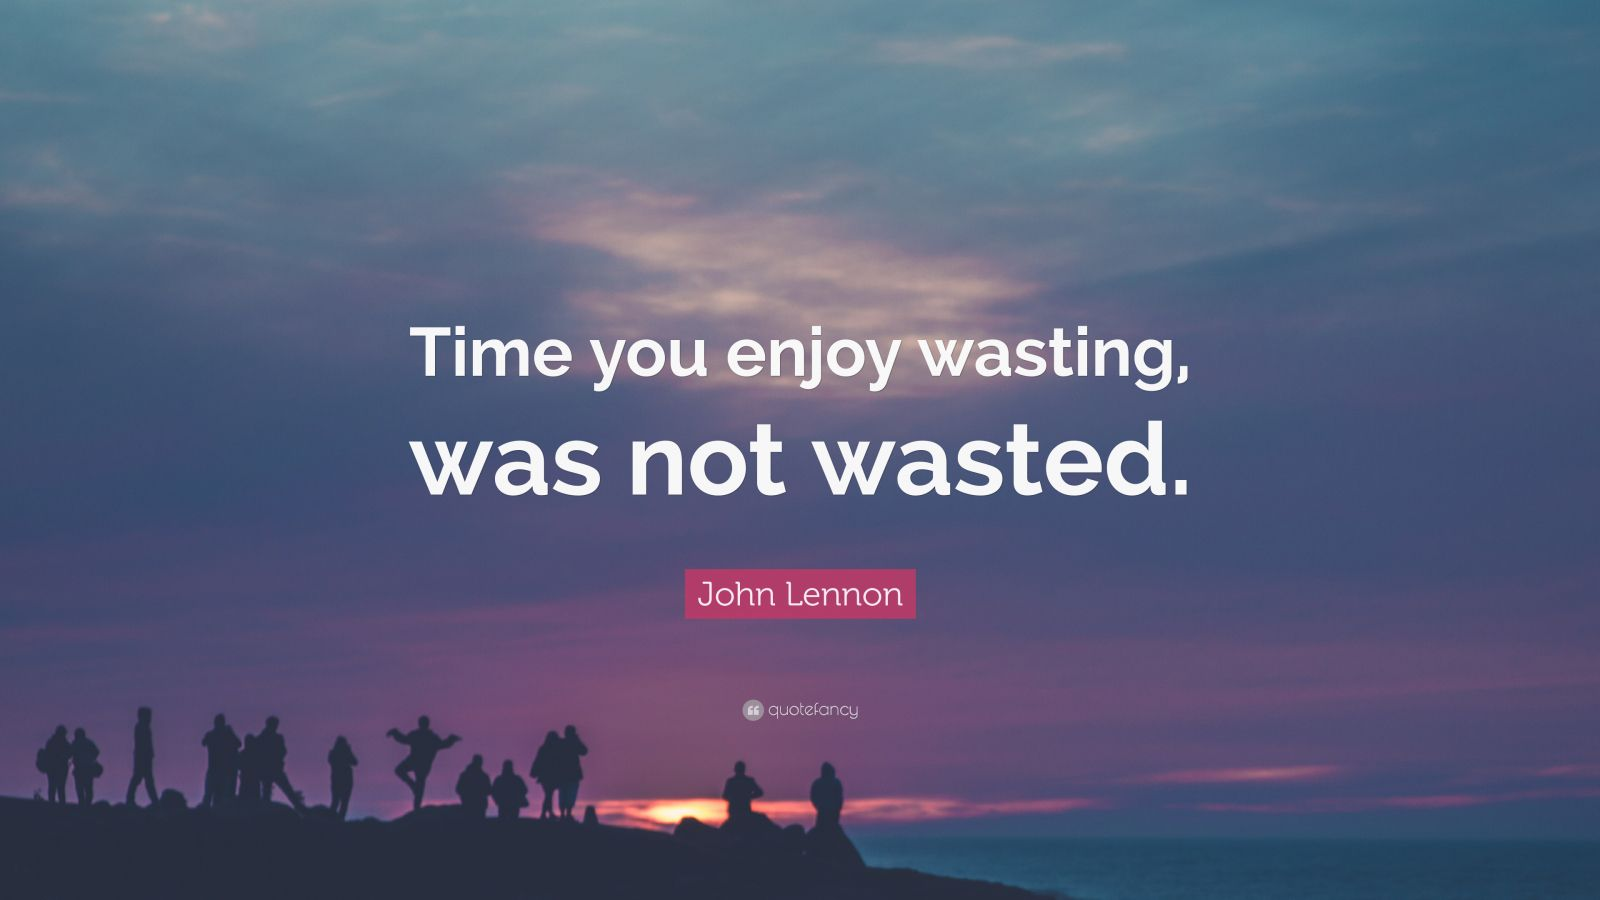 Nietzsche Quotes Wallpaper John Lennon Quote Time You Enjoy Wasting Was Not Wasted